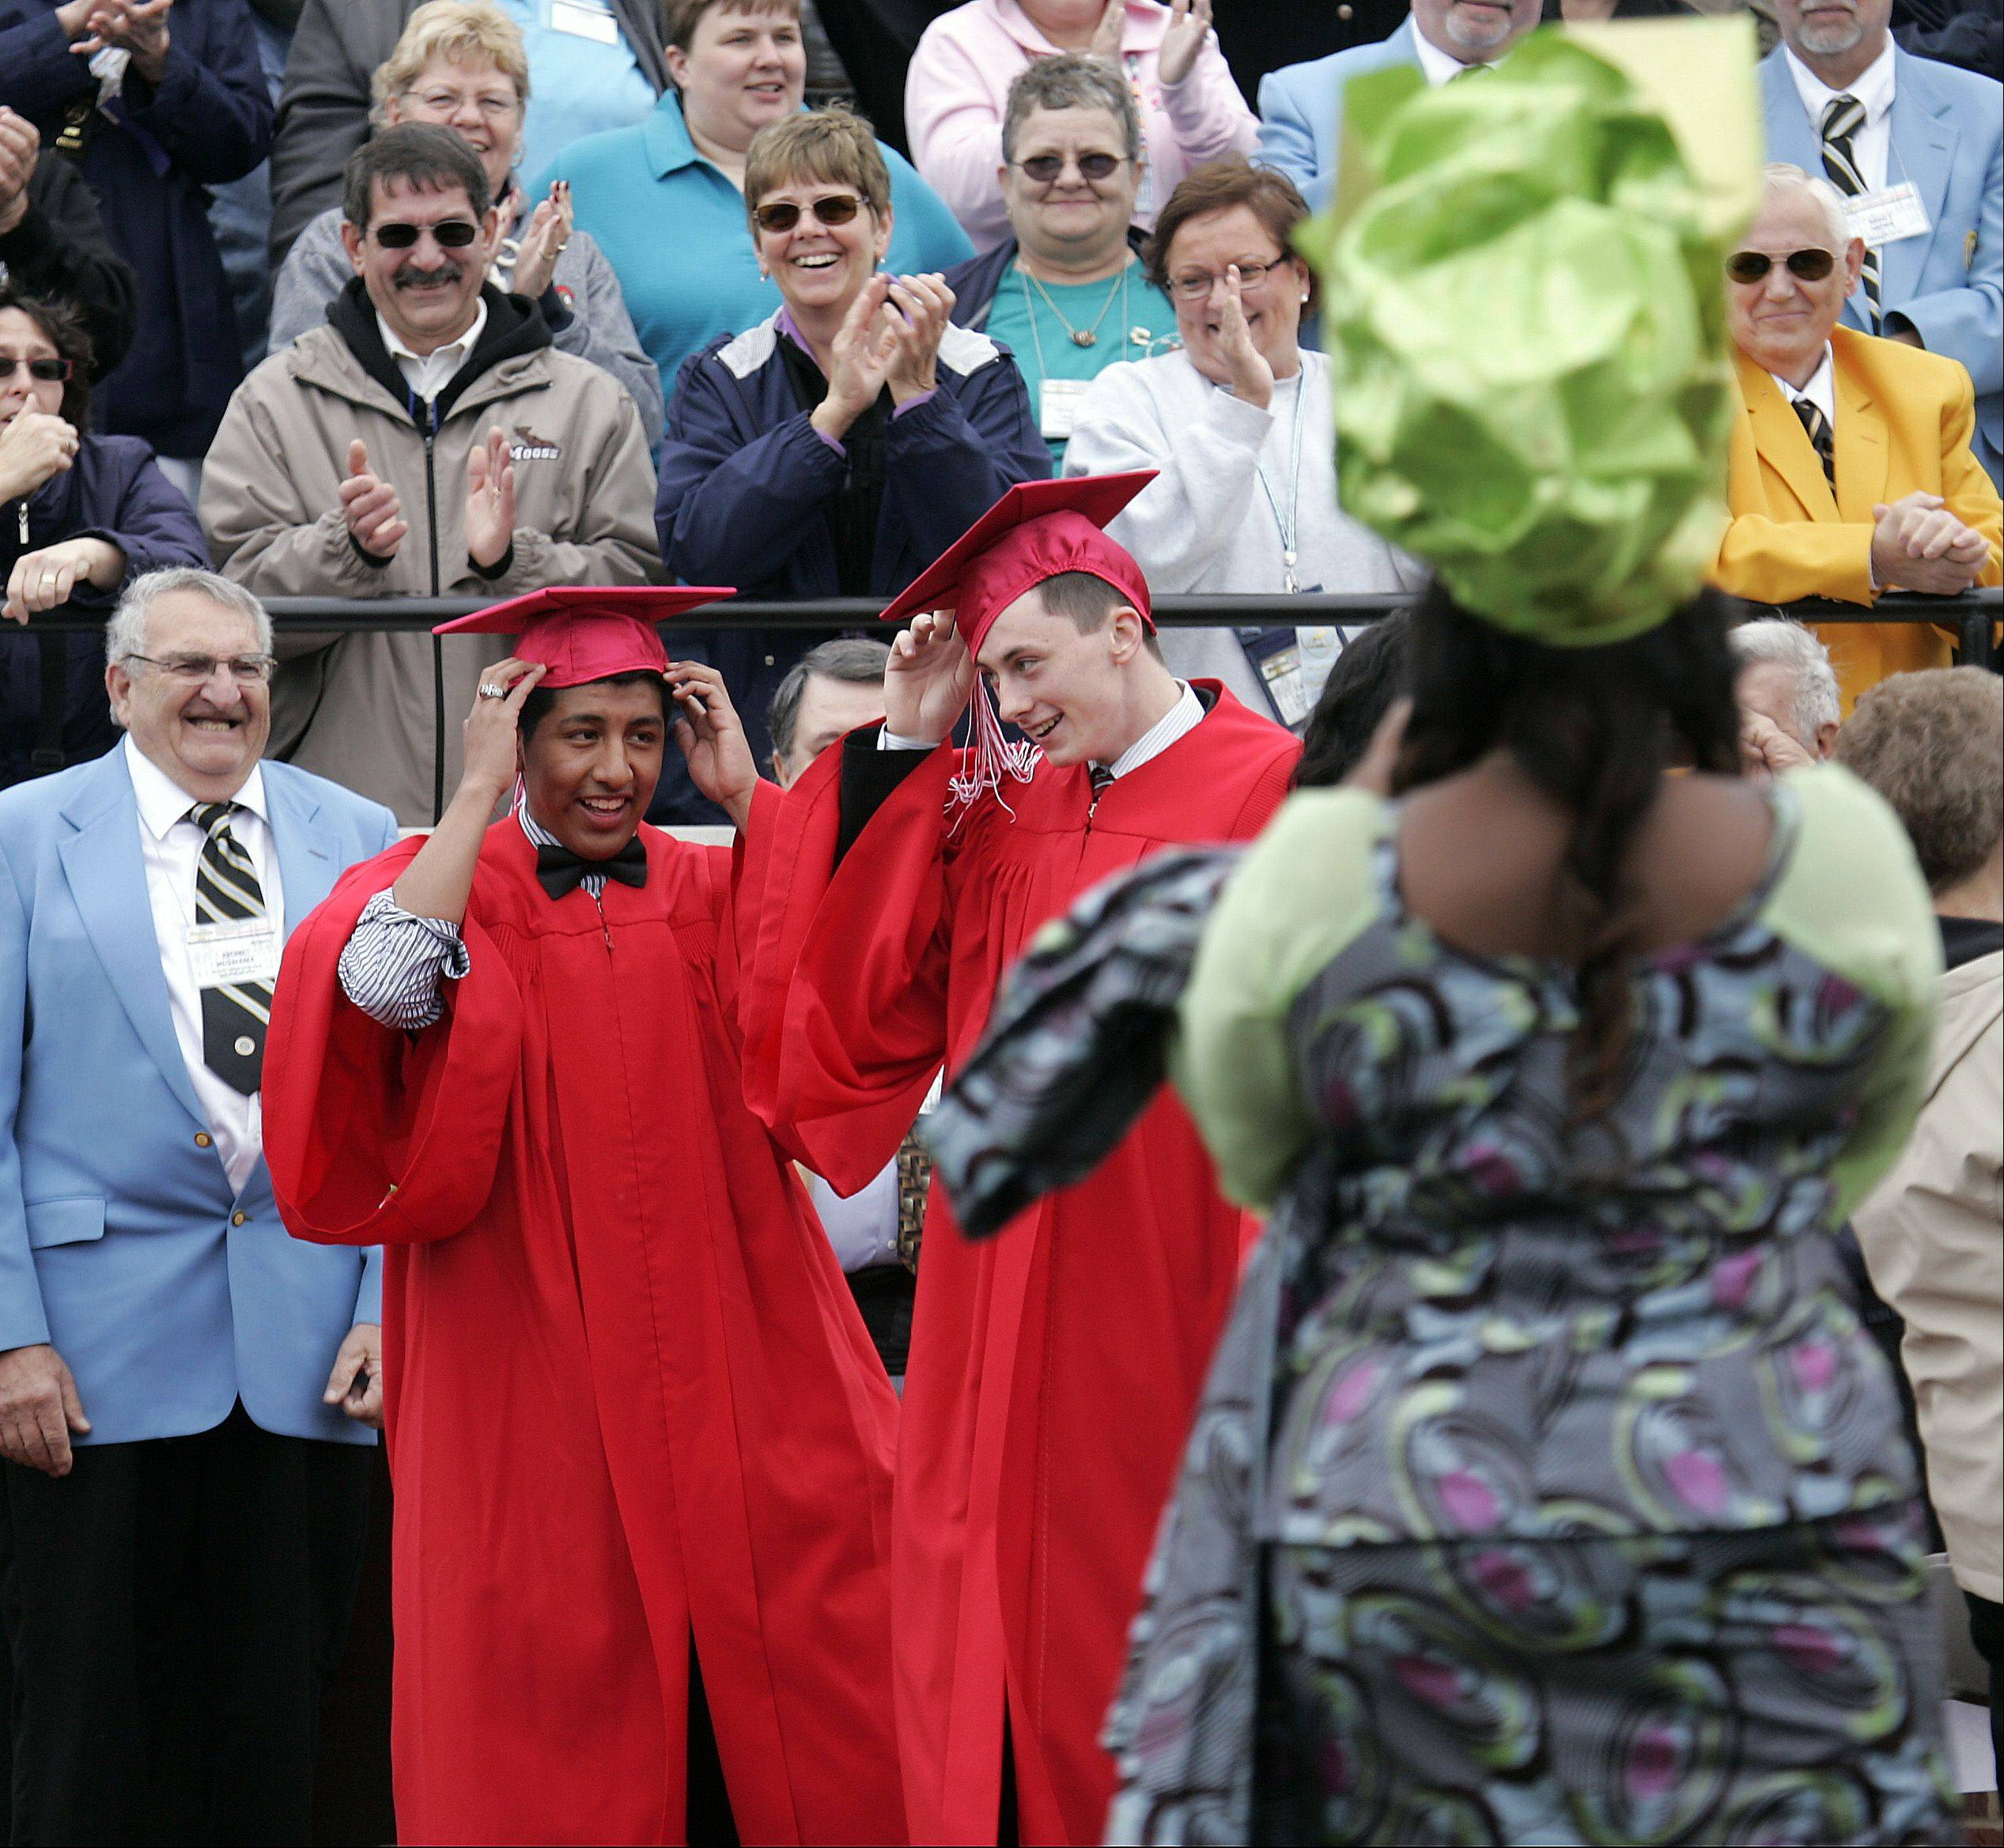 Images from the Mooseheart commencement ceremony Saturday, May 25, 2013 on the Mooseheart campus.